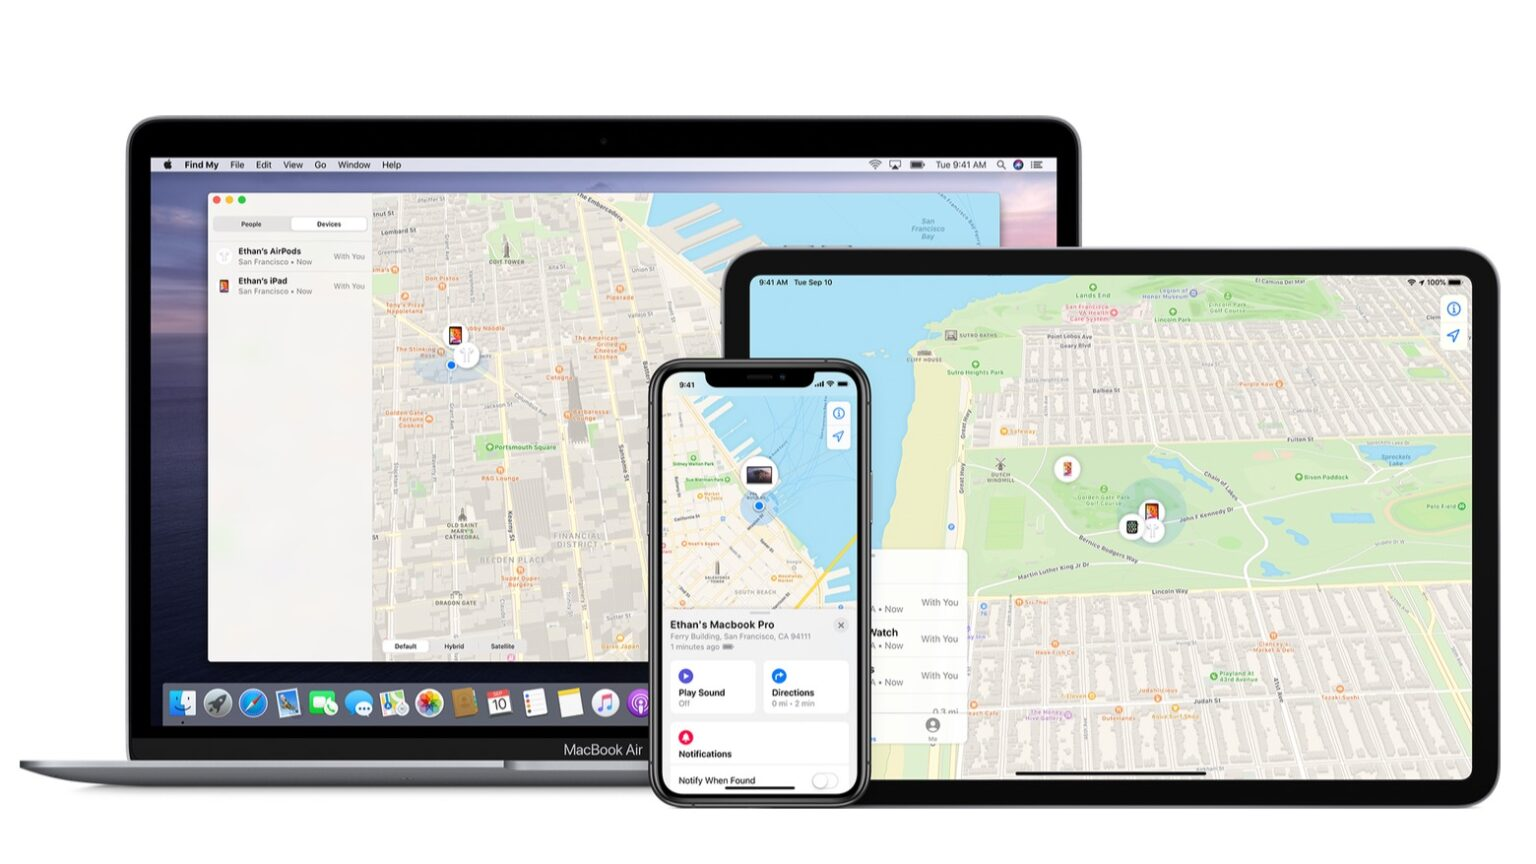 The Find My Network is created by iPhone, iPad and Mac devices